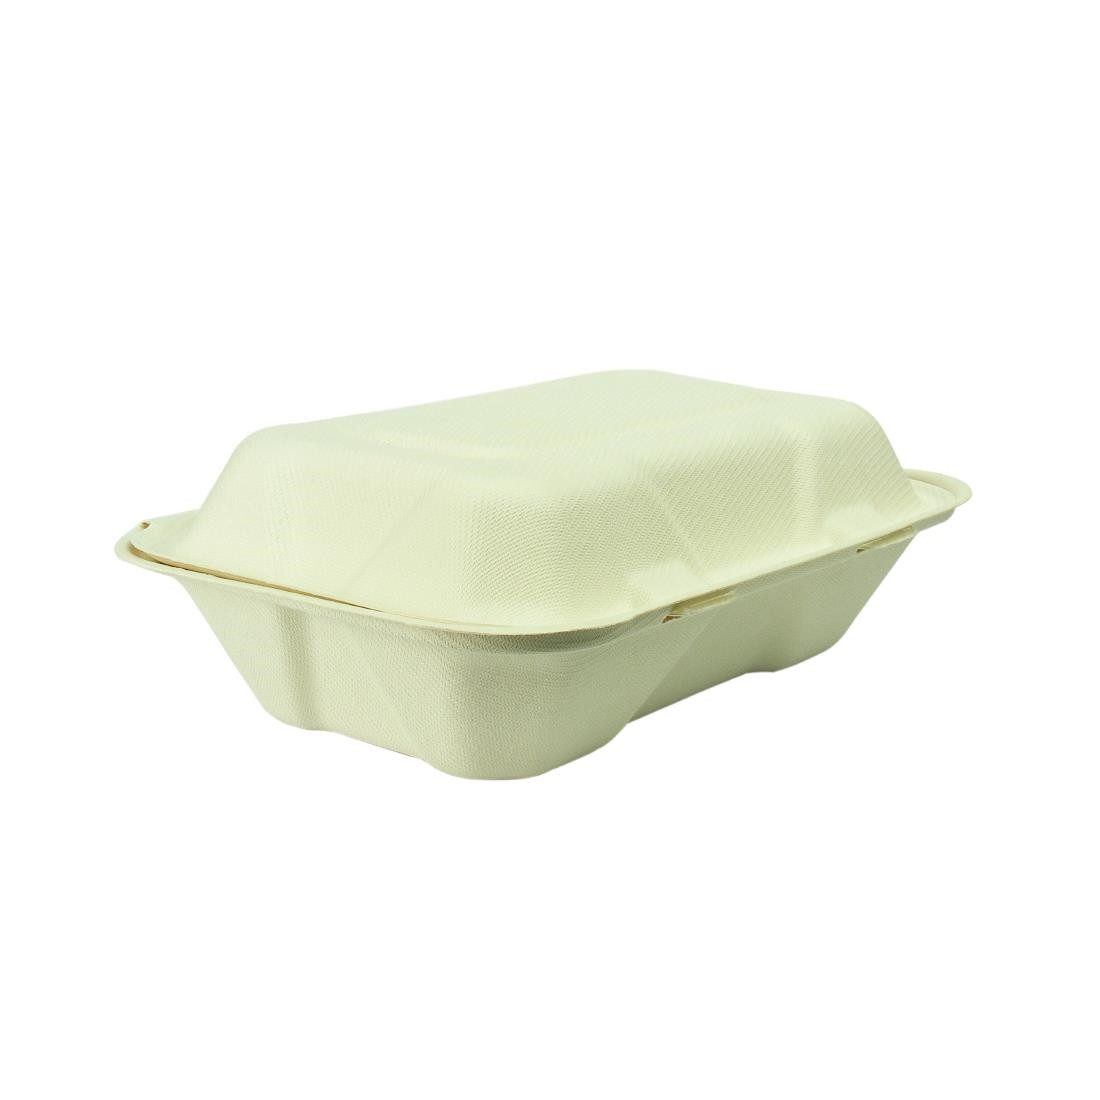 Vegware Compostable Bagasse Clamshell Hinged Meal Boxes 228mm